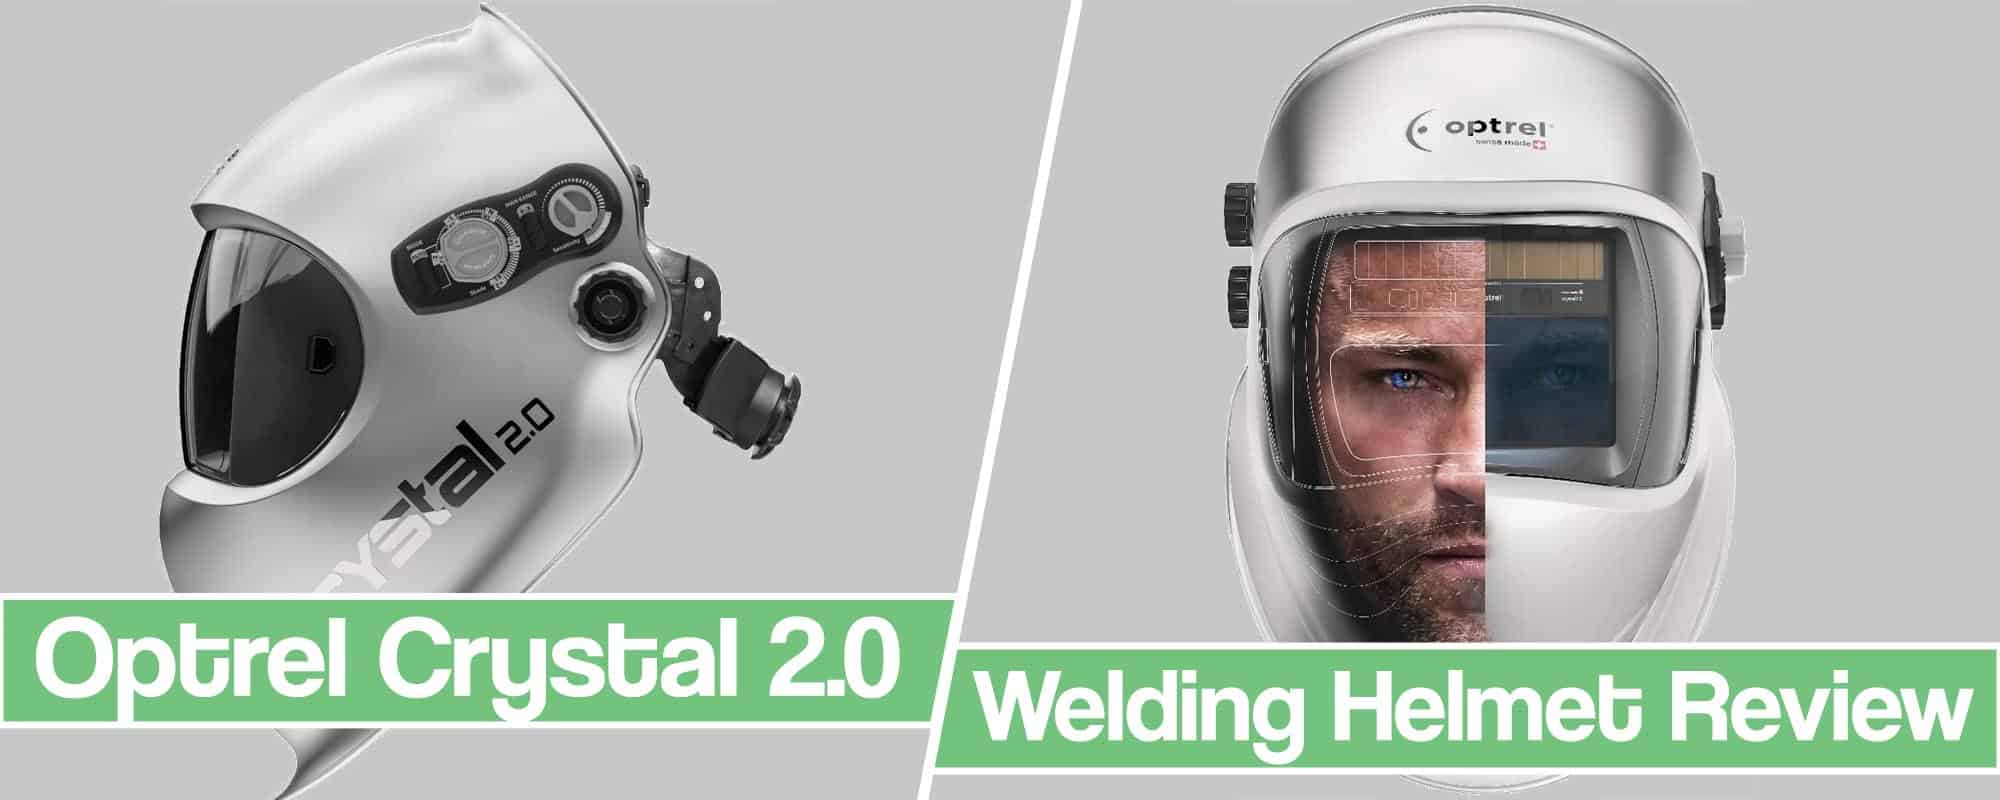 Feature image for Optrel Crystal 2.0 Welding Helmet Review article